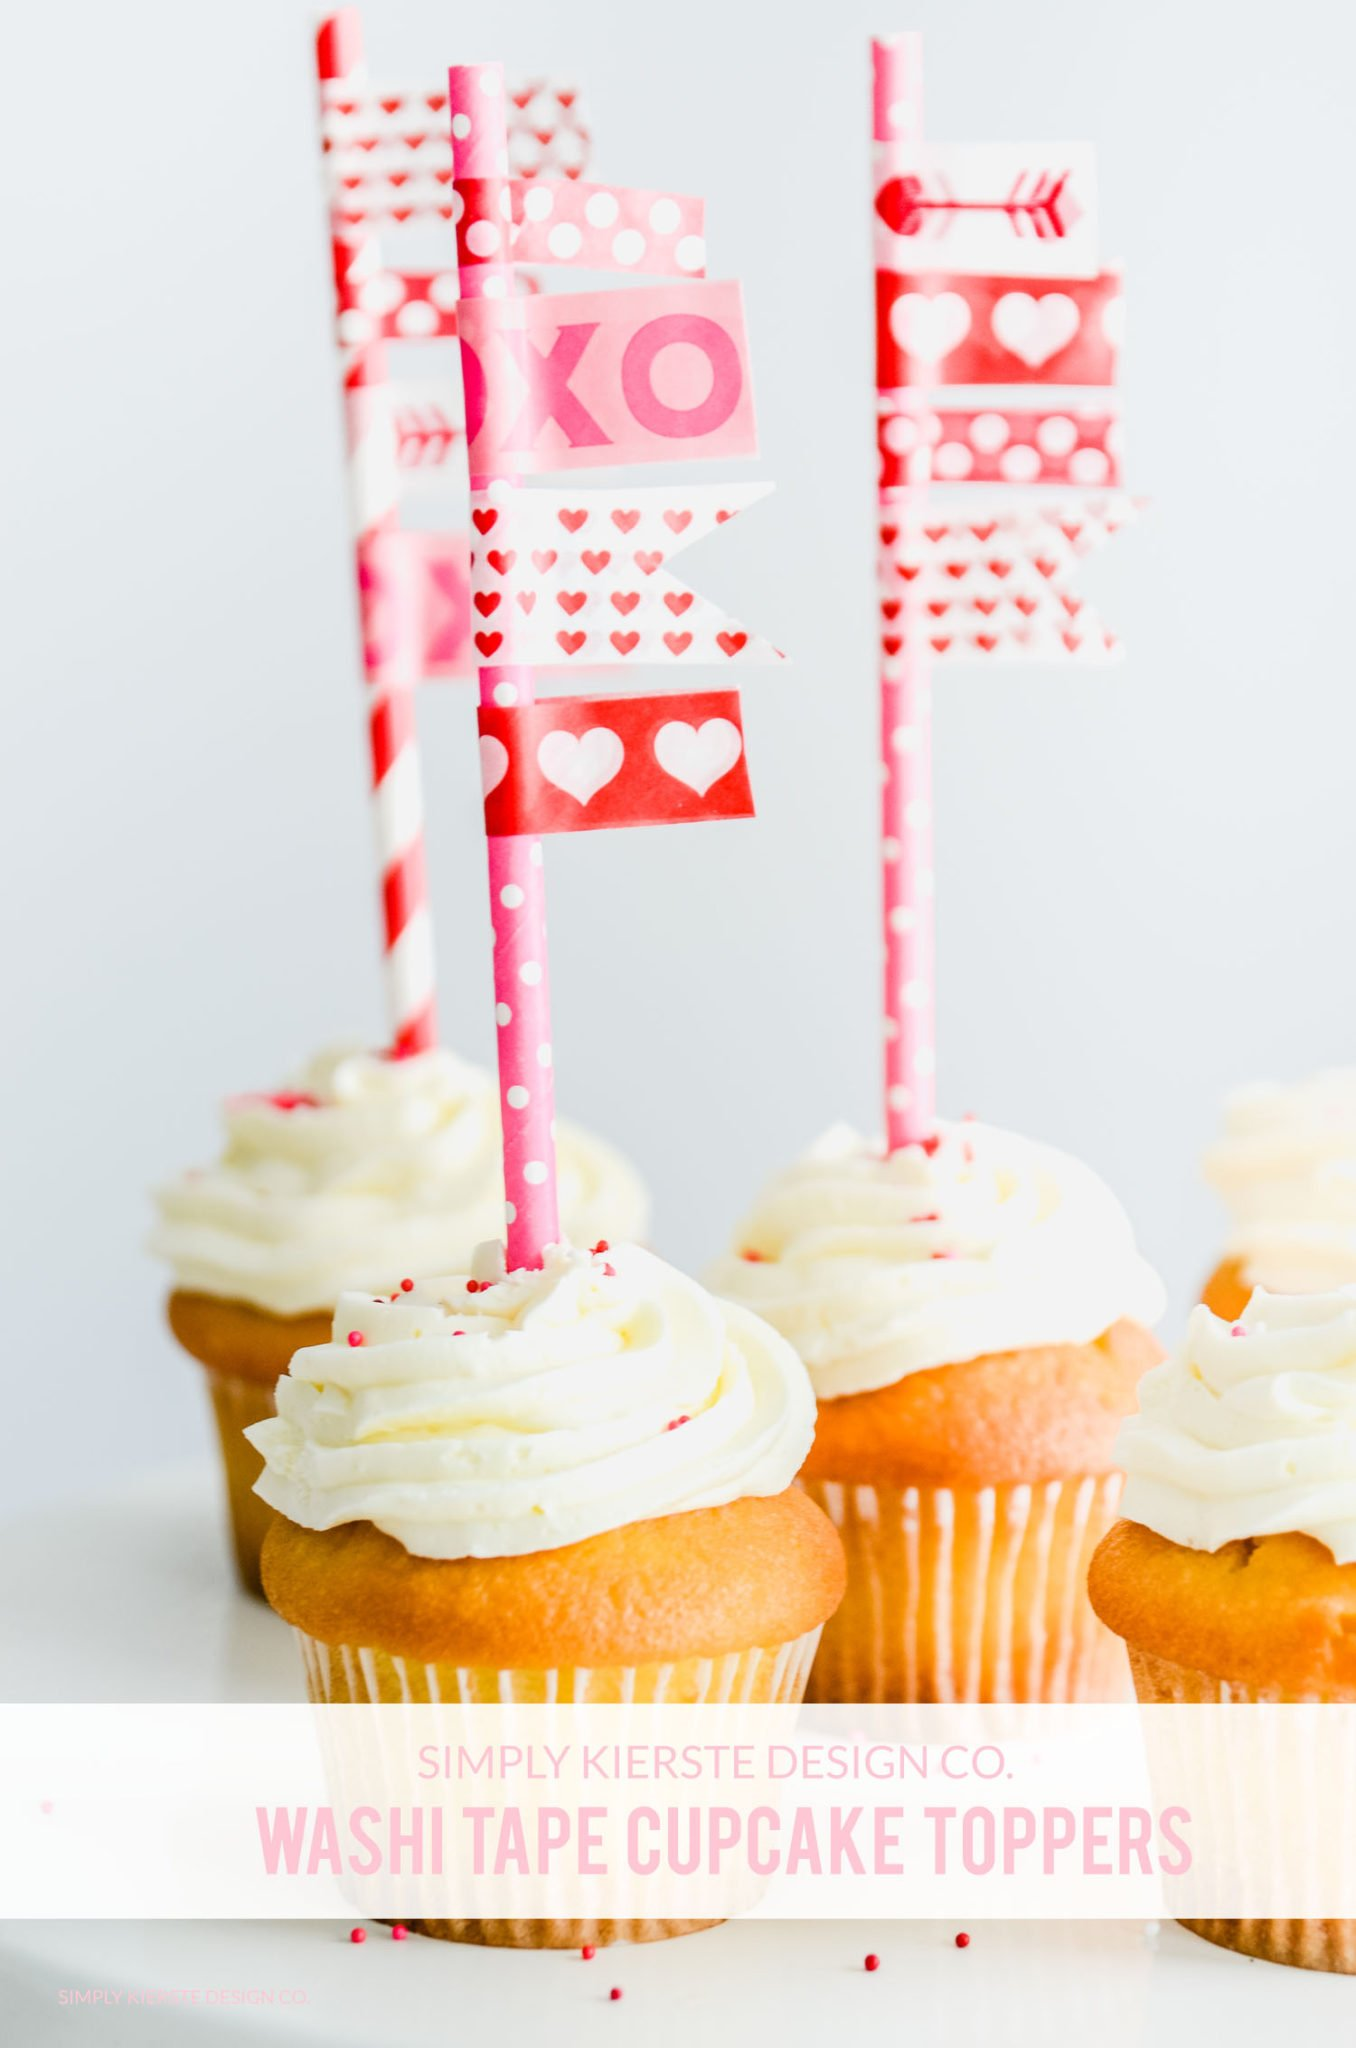 Washi Tape Cupcake Toppers | Valentine's Day | simplykierste.com #washitape #cupcaketoppers #valentinesdaytreats #valentinesdayideas